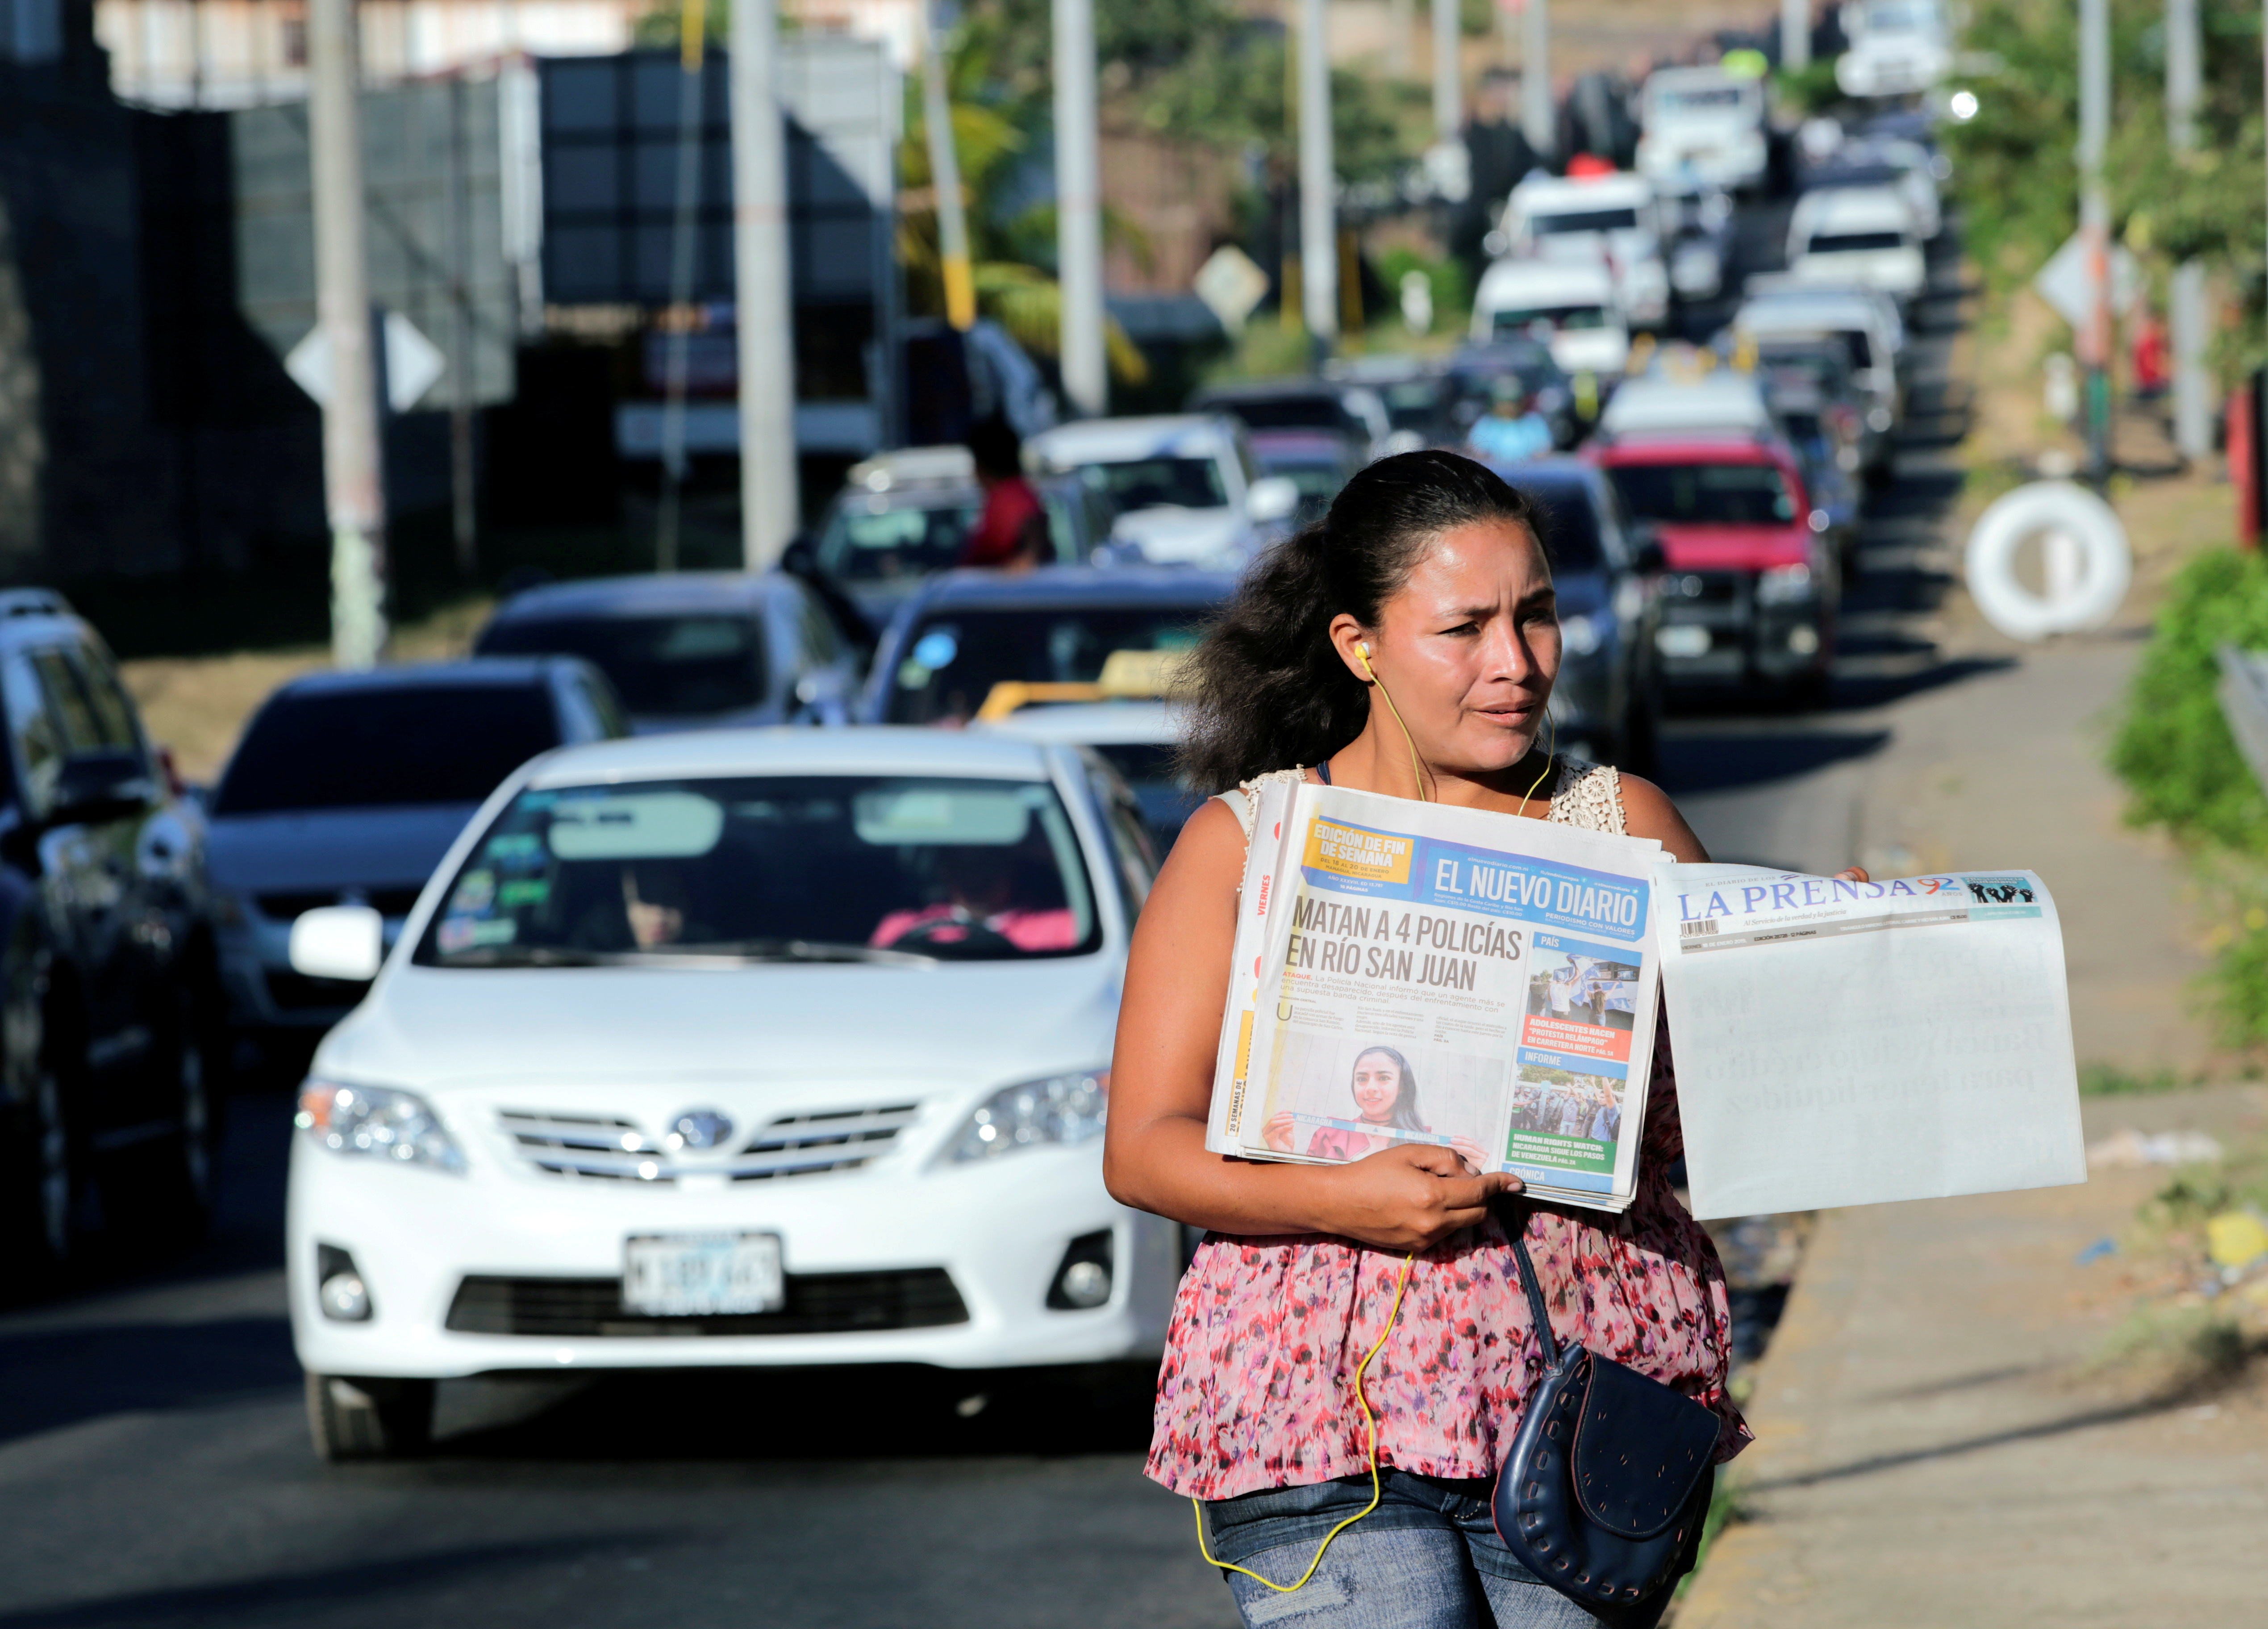 A street vendor sells La Prensa, a local newspaper showing a blank front page as a sign of protest against Daniel Ortega's government, in Managua, Nicaragua January 18, 2019. REUTERS/Oswaldo Rivas/File Photo